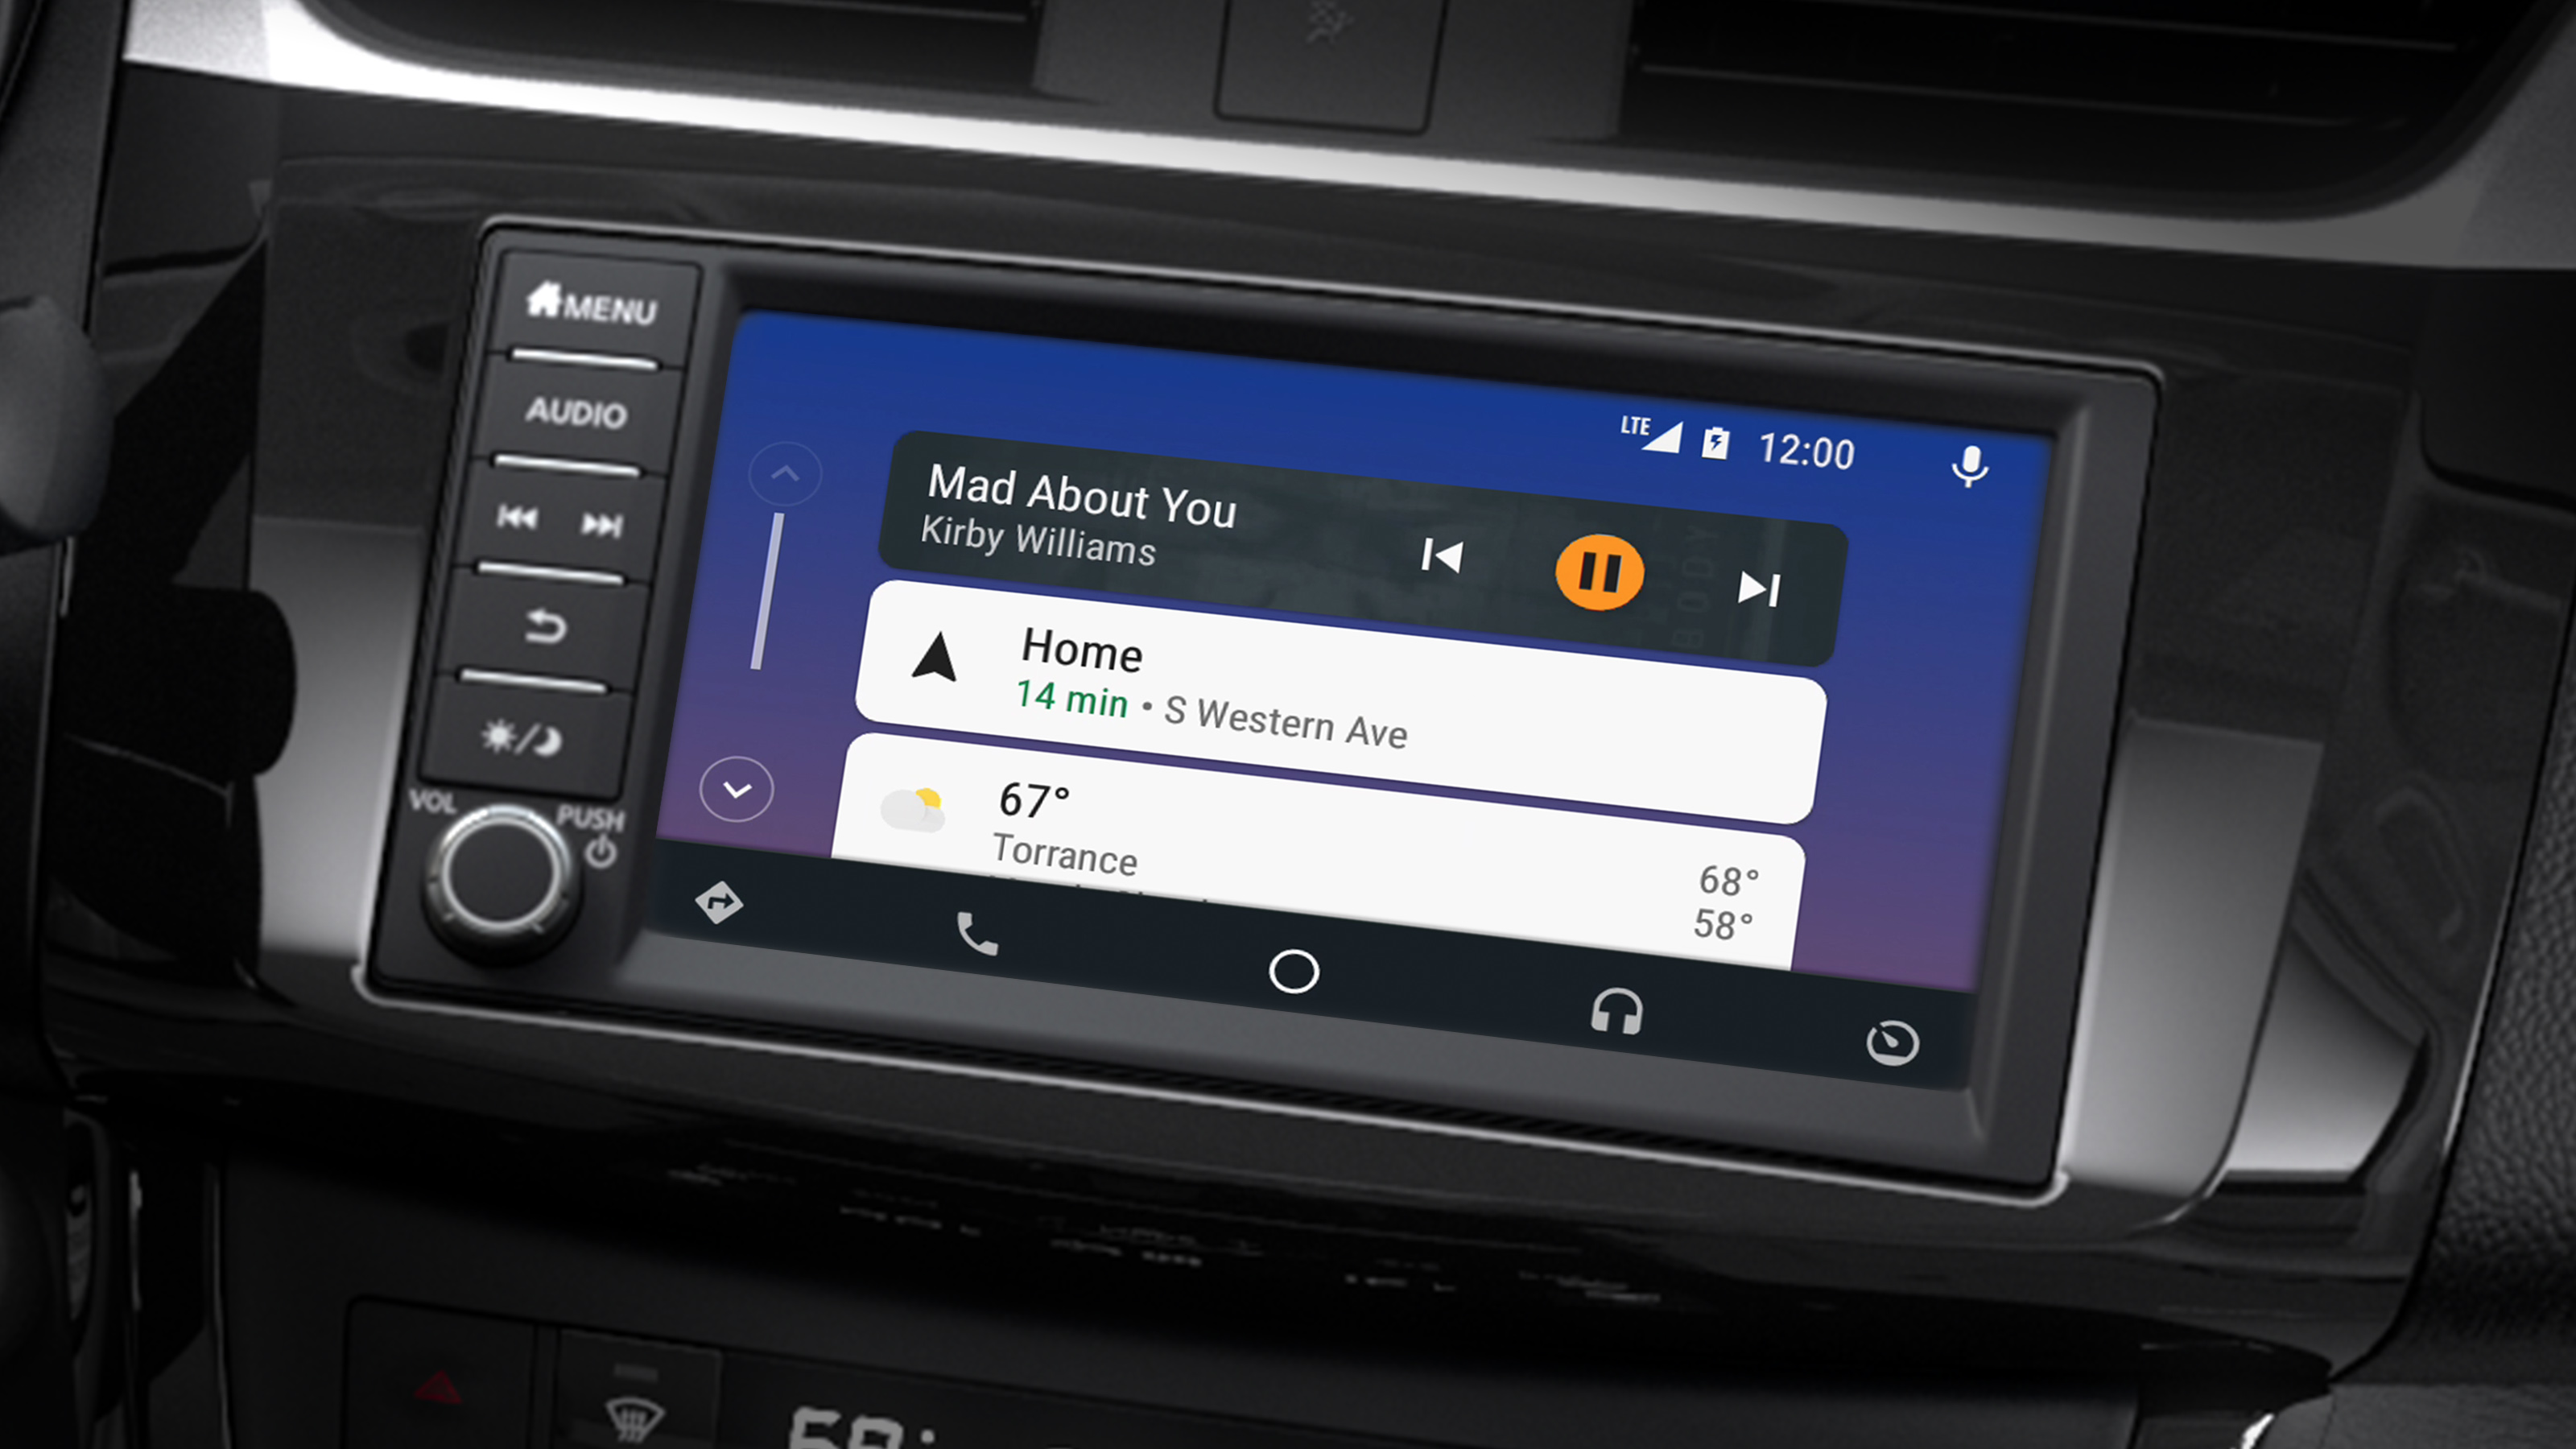 All Your Media at Your Fingertips in the Sentra!